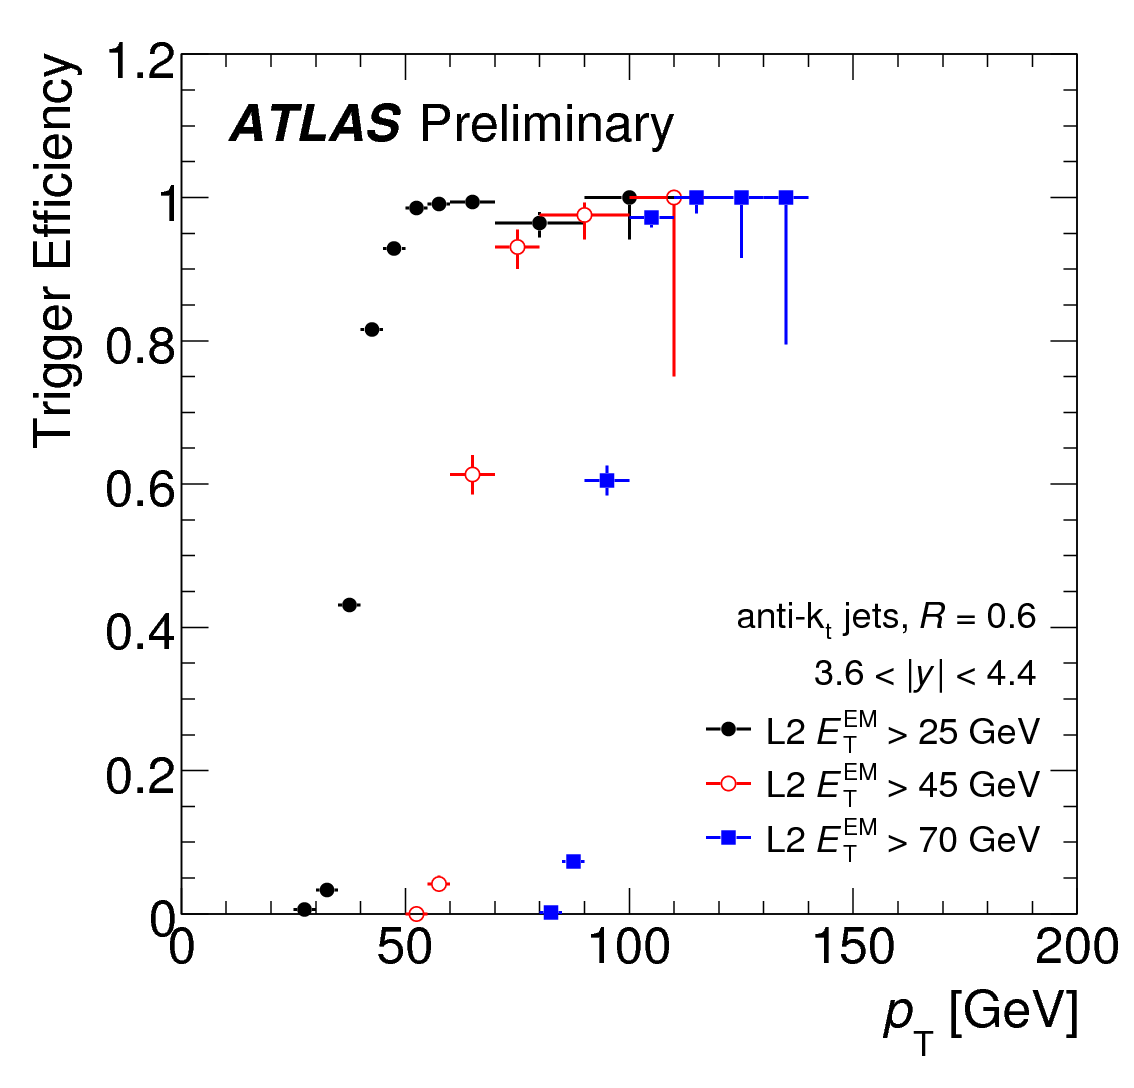 https://atlas.web.cern.ch/Atlas/GROUPS/PHYSICS/CONFNOTES/ATLAS-CONF-2011-047/fig_03b.png